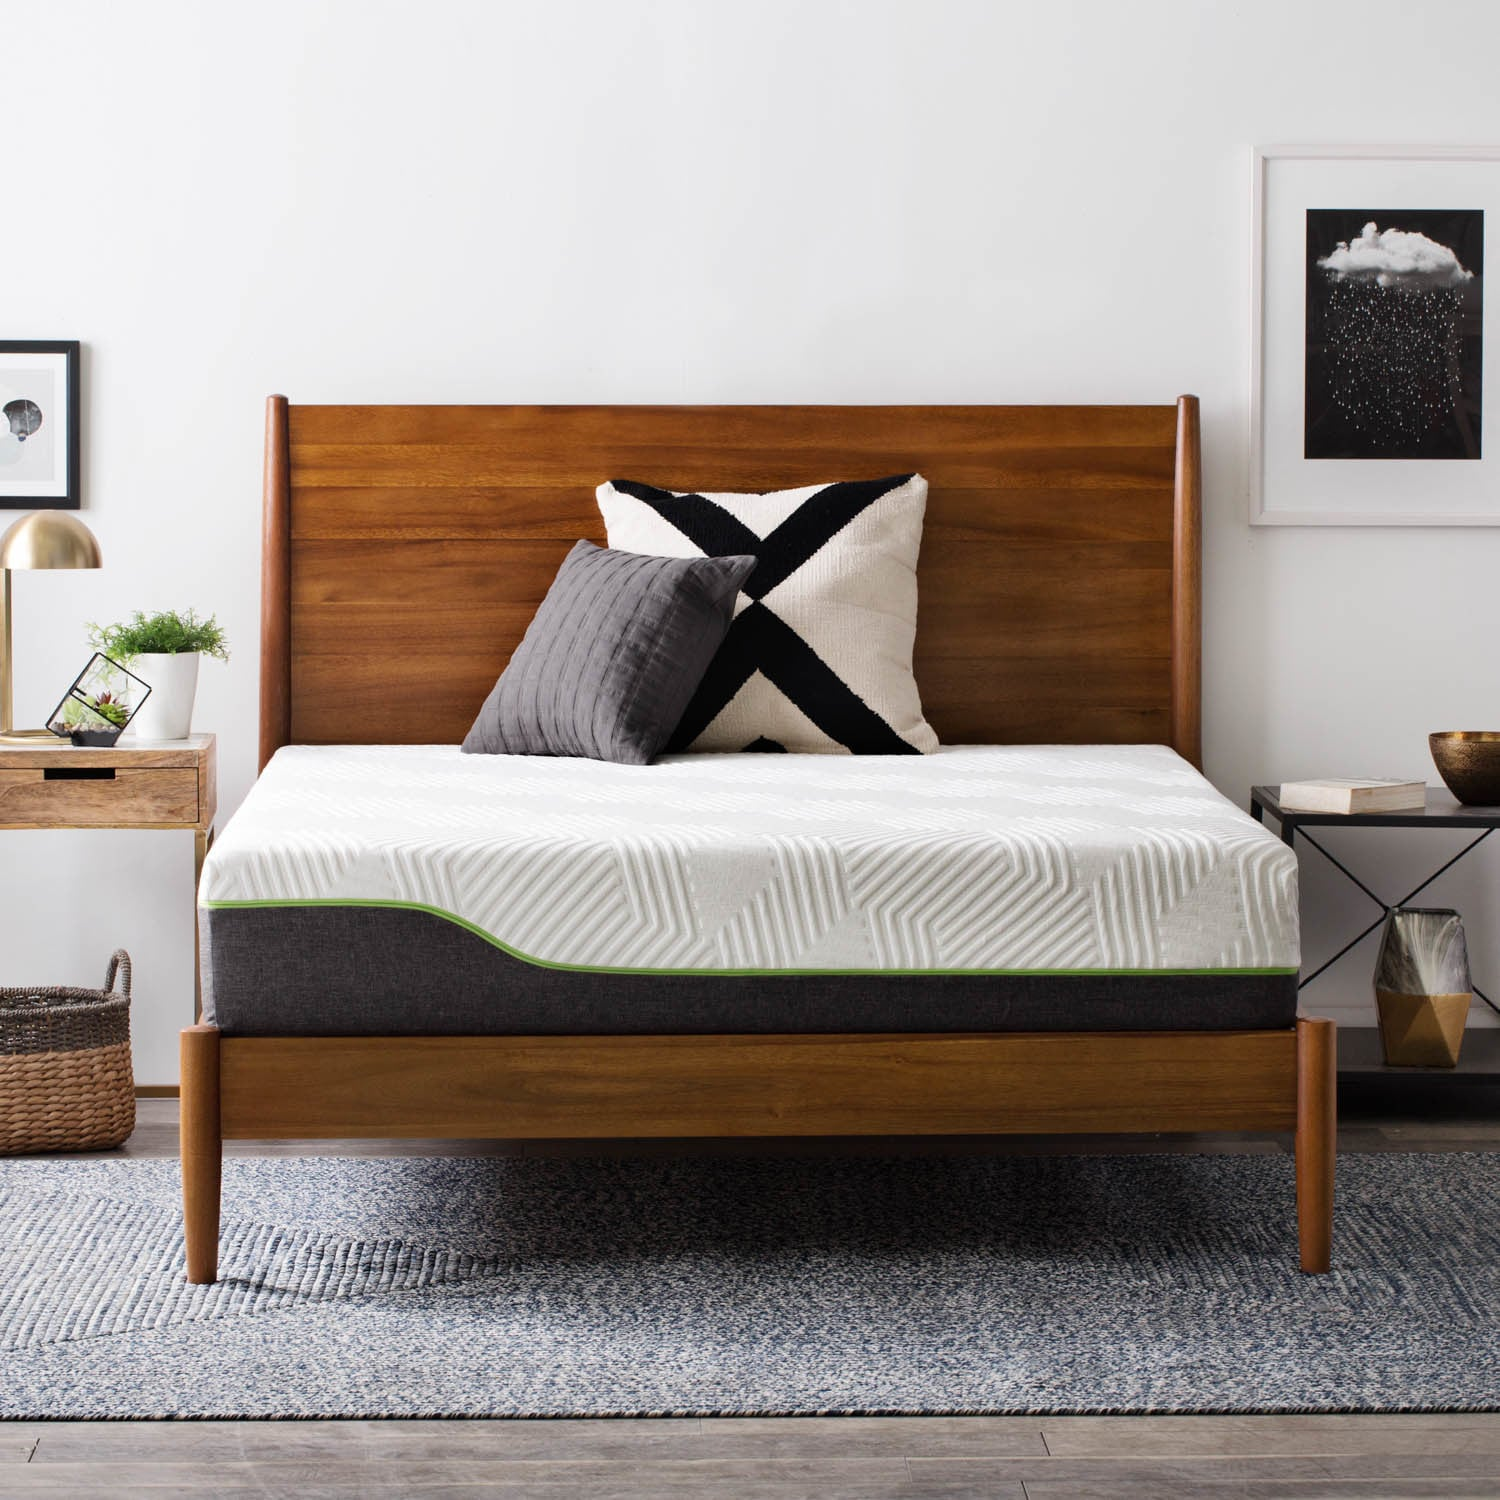 Full Bed Mattress Buy Full Size Mattresses Online At Overstock Our Best Bedroom